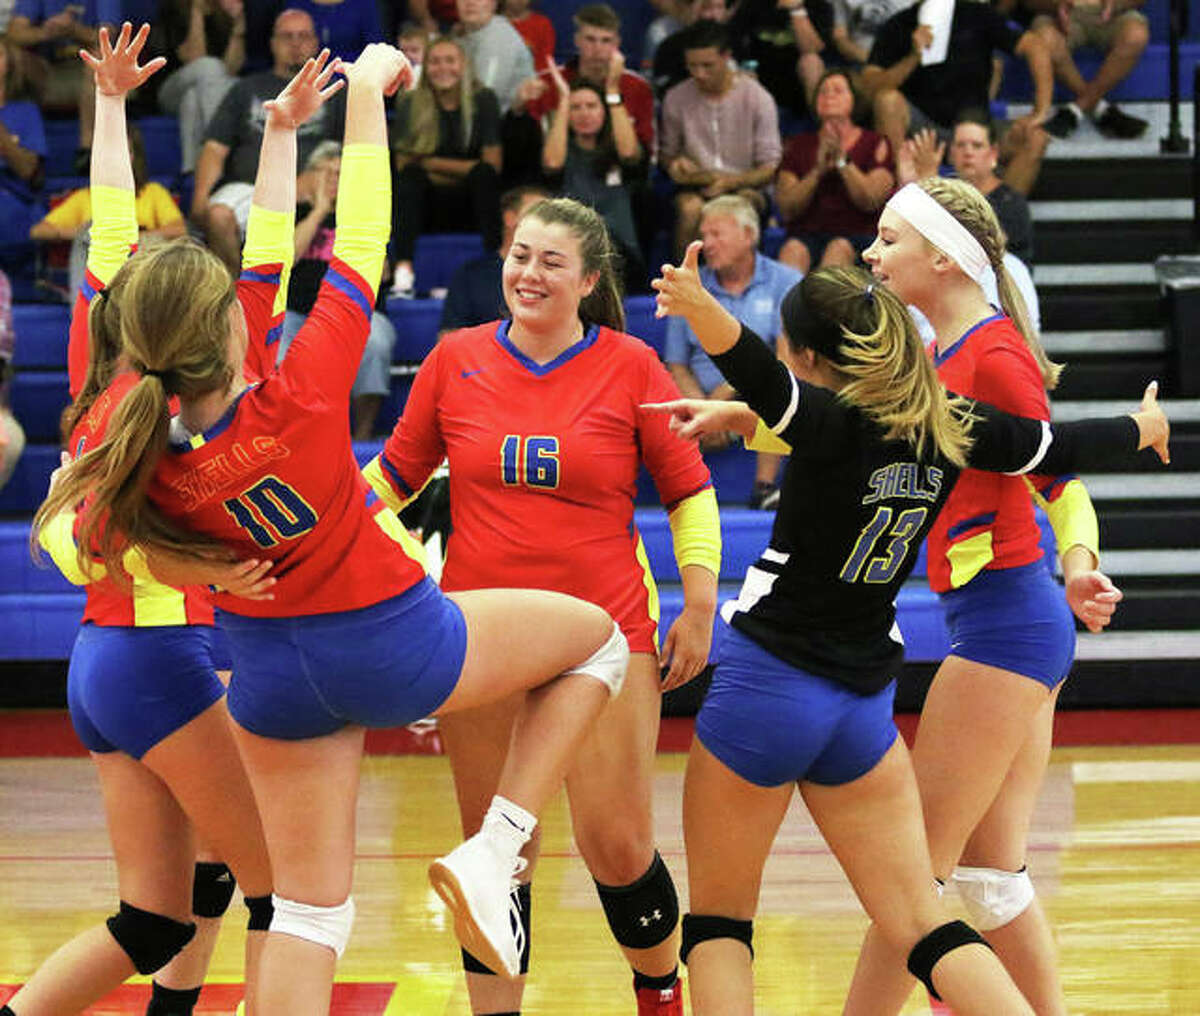 Roxana High School's Jacey Trask (16), Darcey McGuire (10), Makenzie Keller (13) and Reagen Stahlhut (right) celebrate a point with teammates in 2019 against Bunker Hill. Trask, who graduated from Roxana in May, has transferred to the Lewis and Clark Community College volleyball team after originally signing with John Wood College in Quincy.